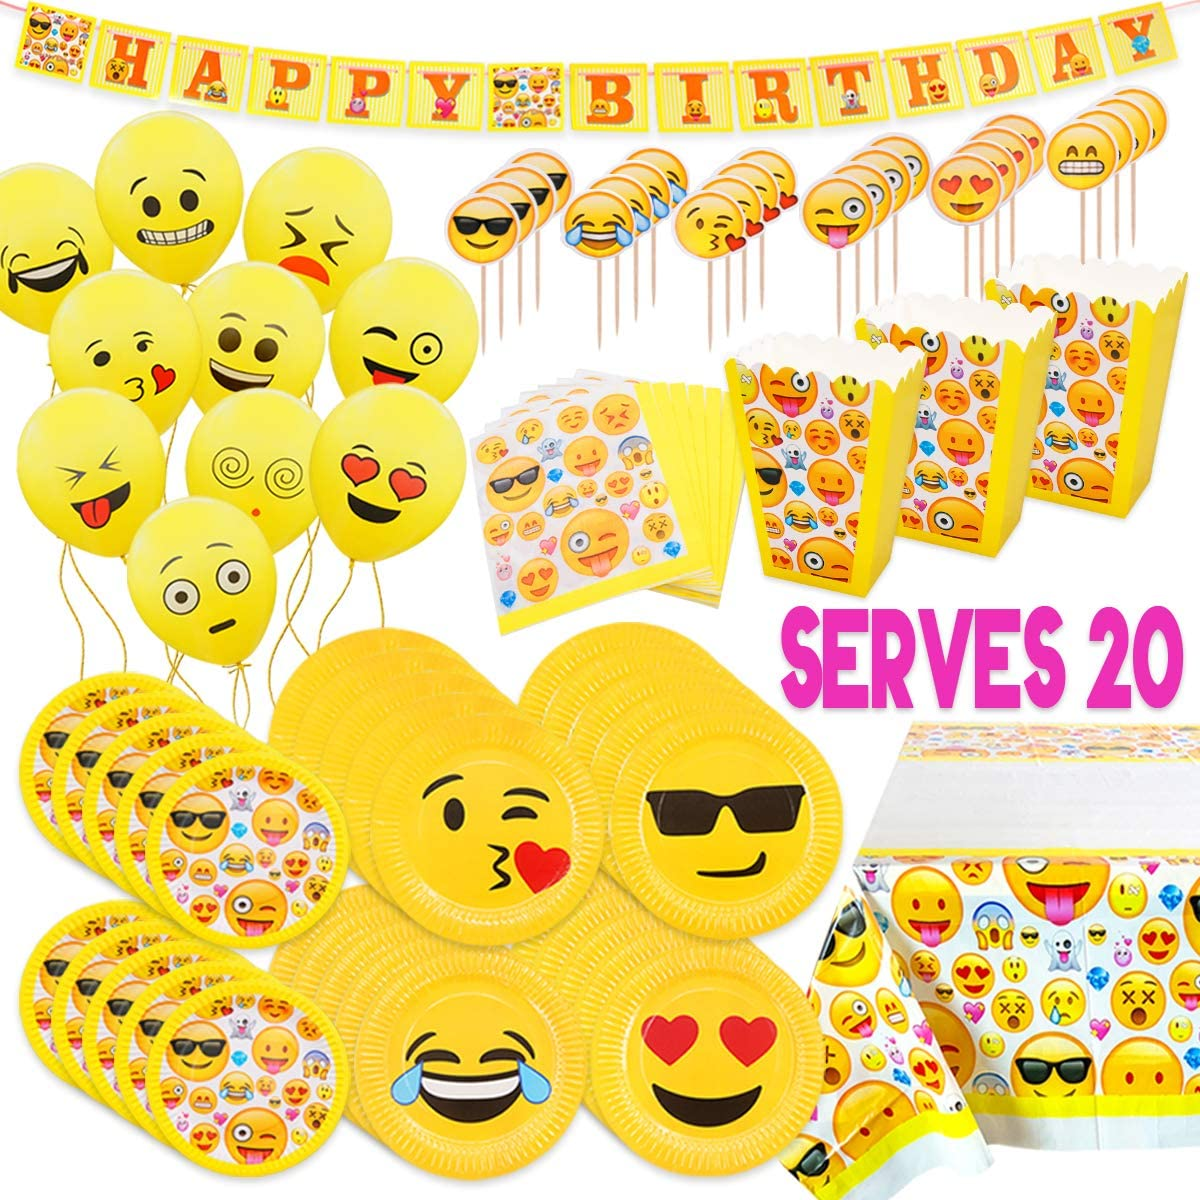 MelonBoat Emoji Party Supplies Birthday Decorations Kit, Plates, Napkins, Tablecloth, Popcorn Boxes, Cake Toppers, Banners, Latex Balloons, 102 ct, Serves 20